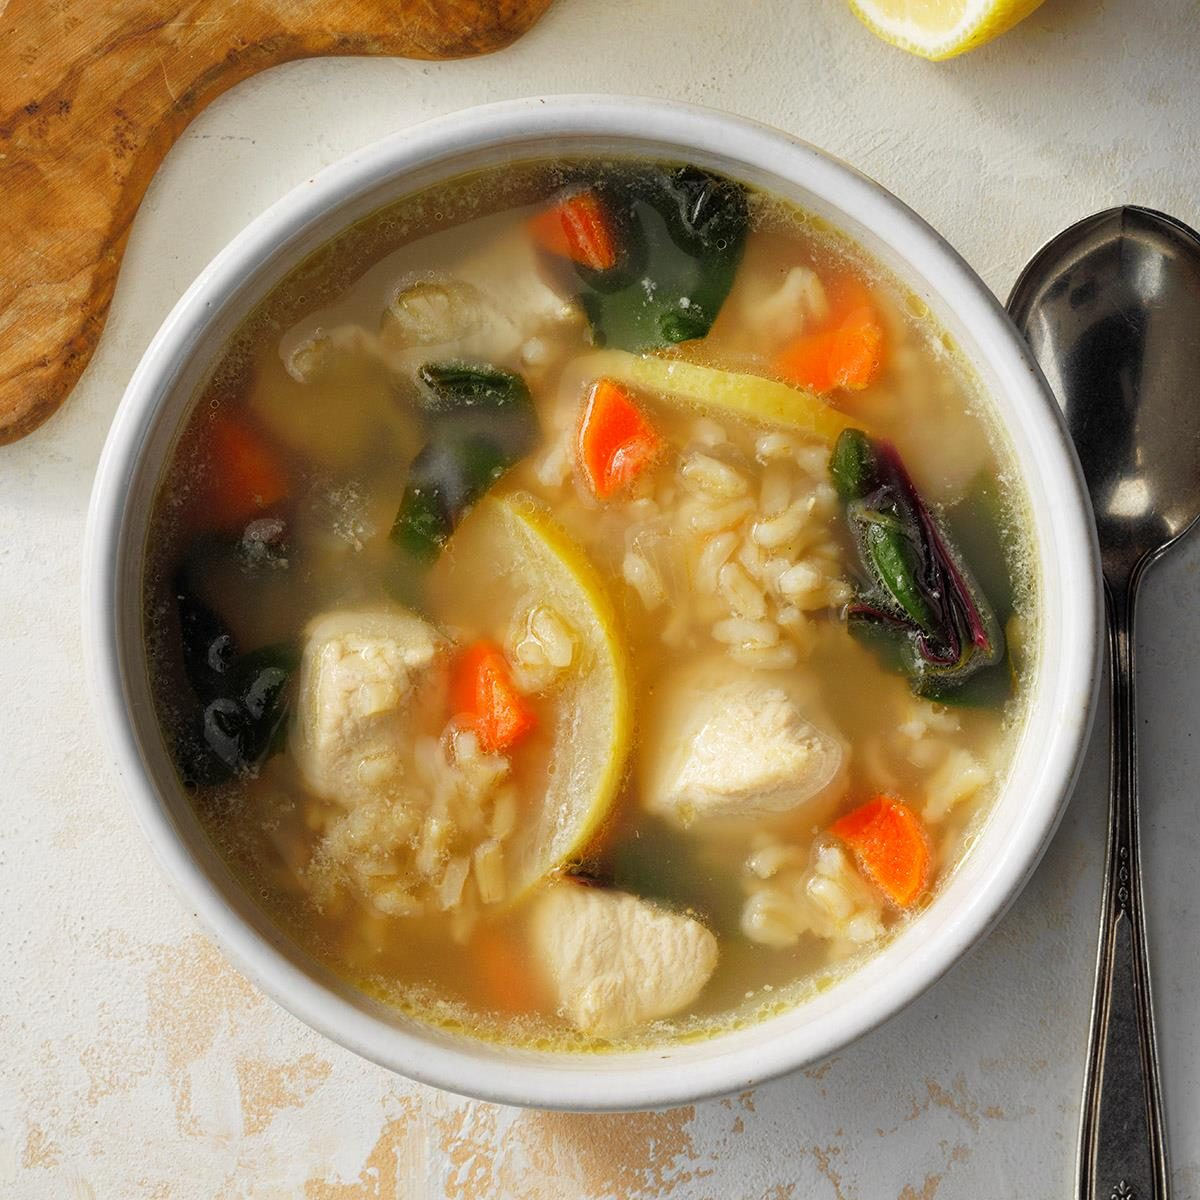 Inspired by: Panera Bread Lemon, Chicken and Orzo Soup